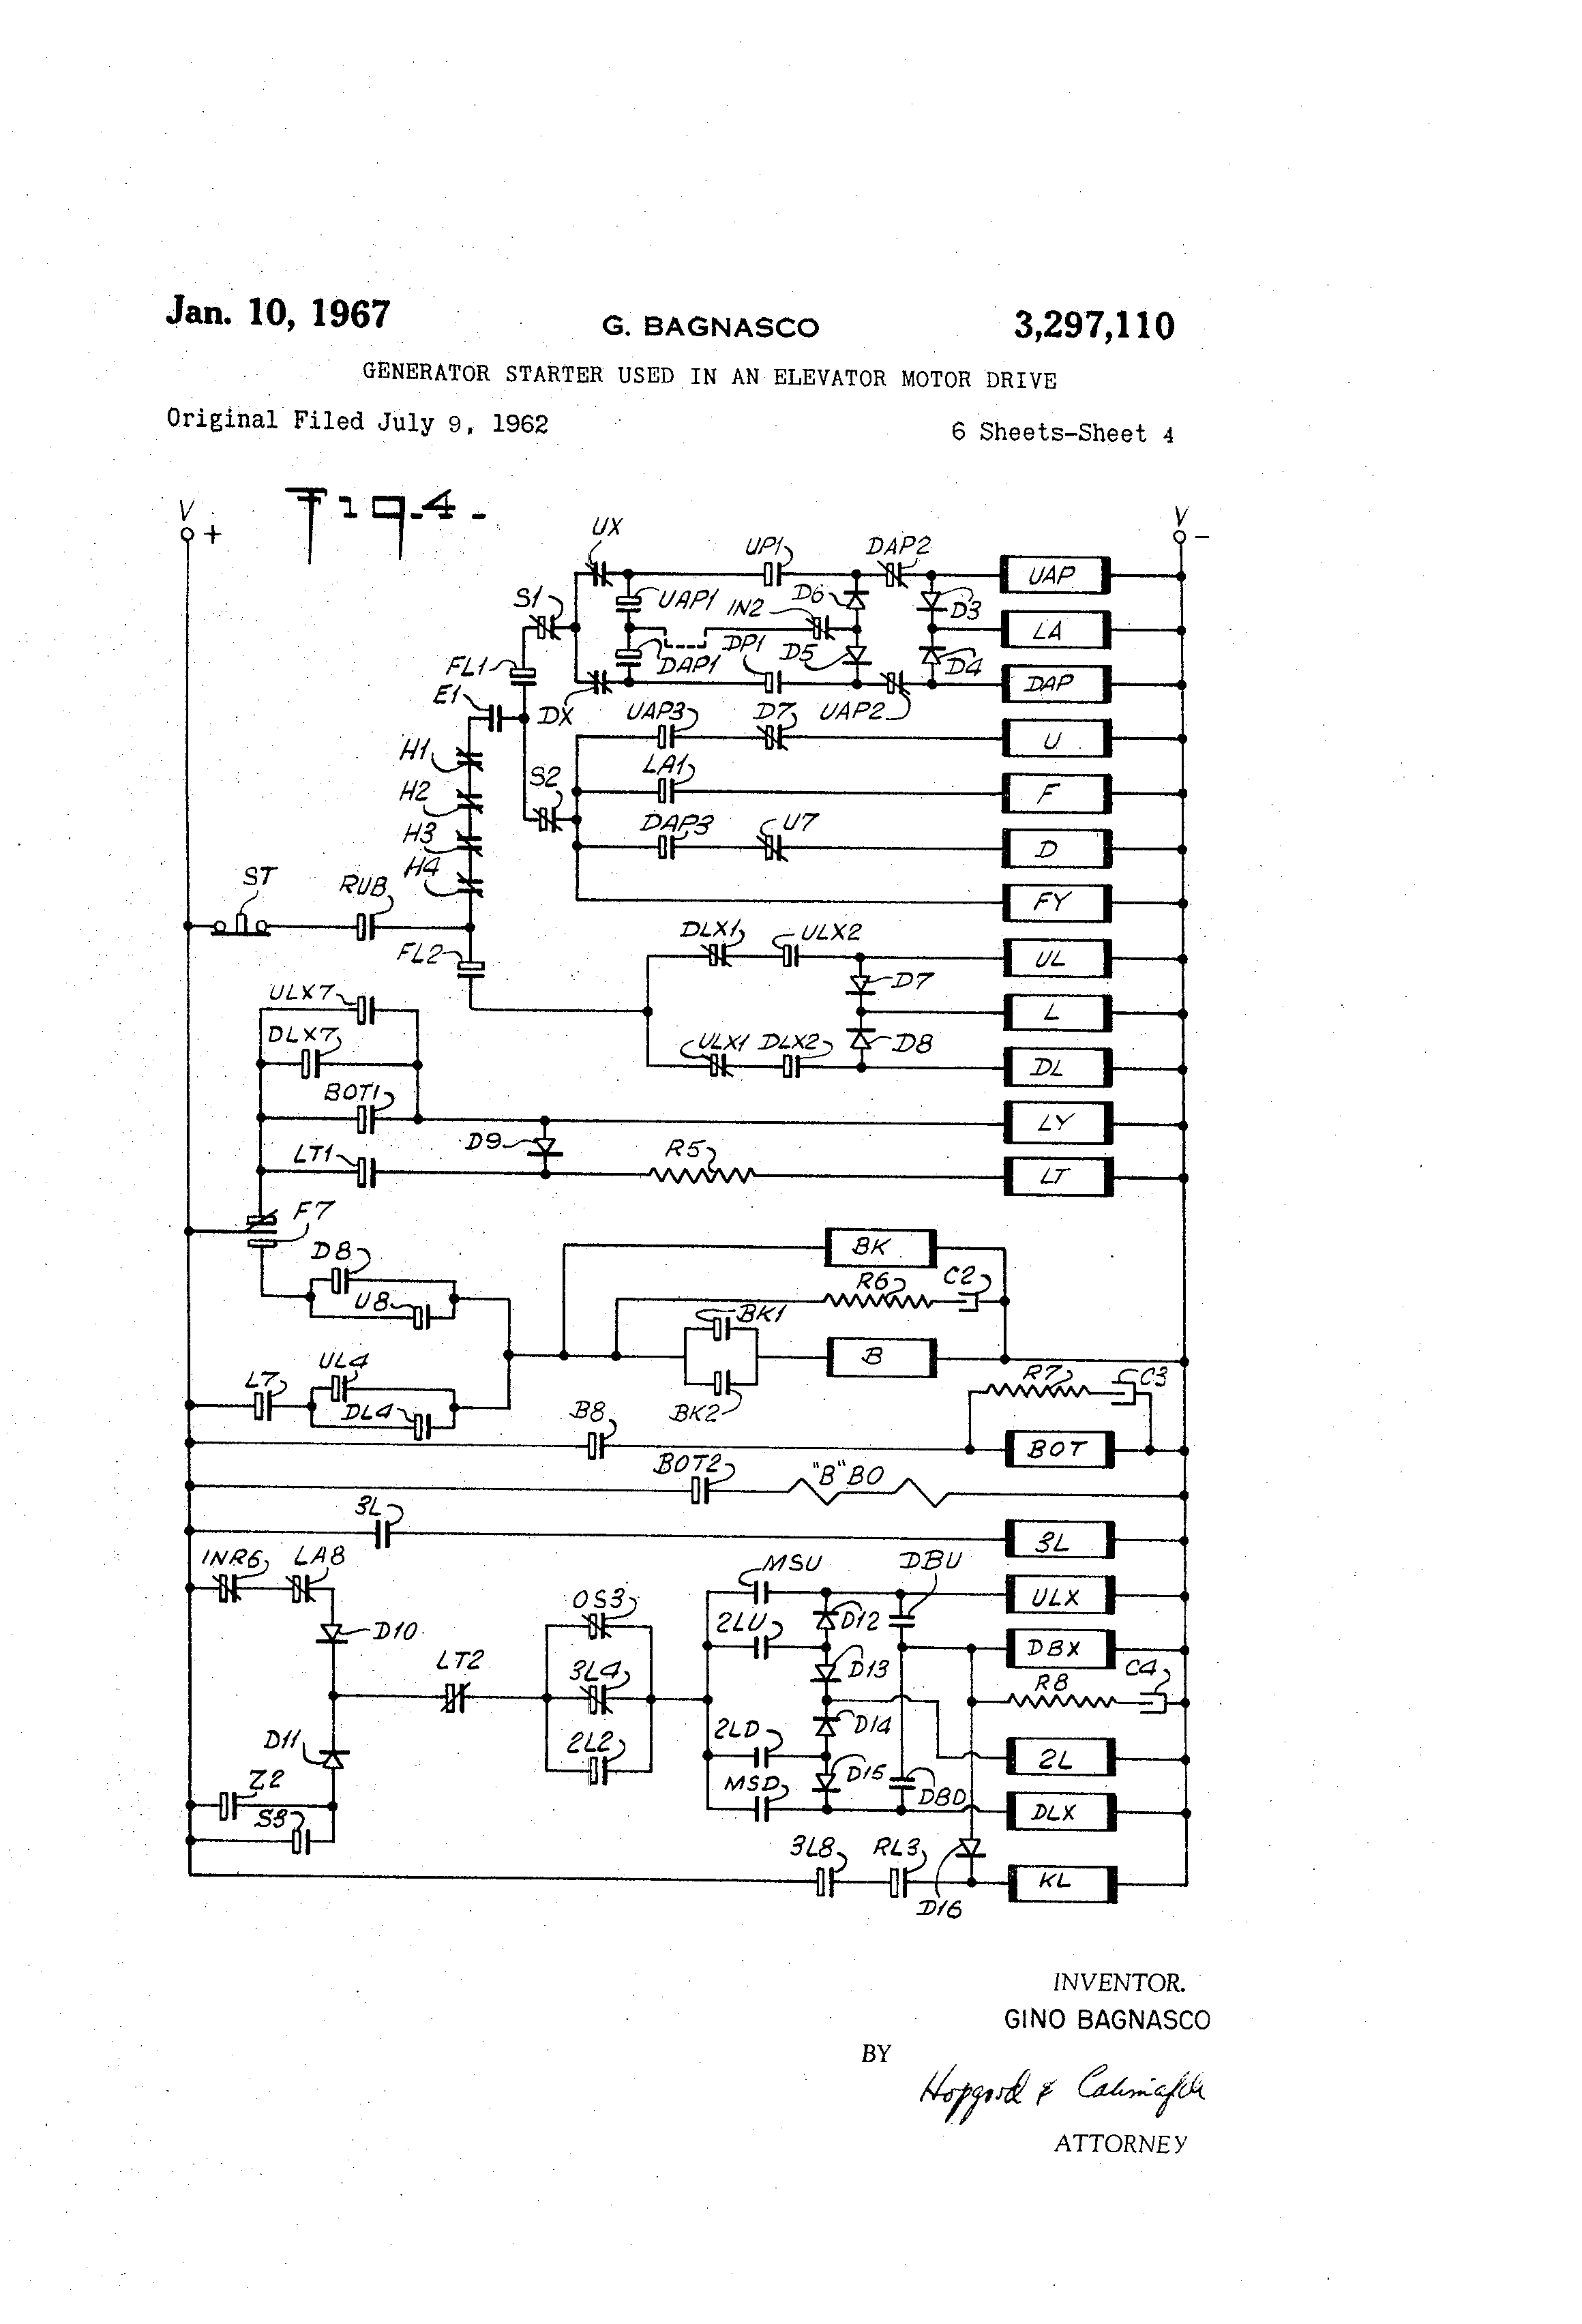 patent us3297110 - generator starter used in an elevator motor drive